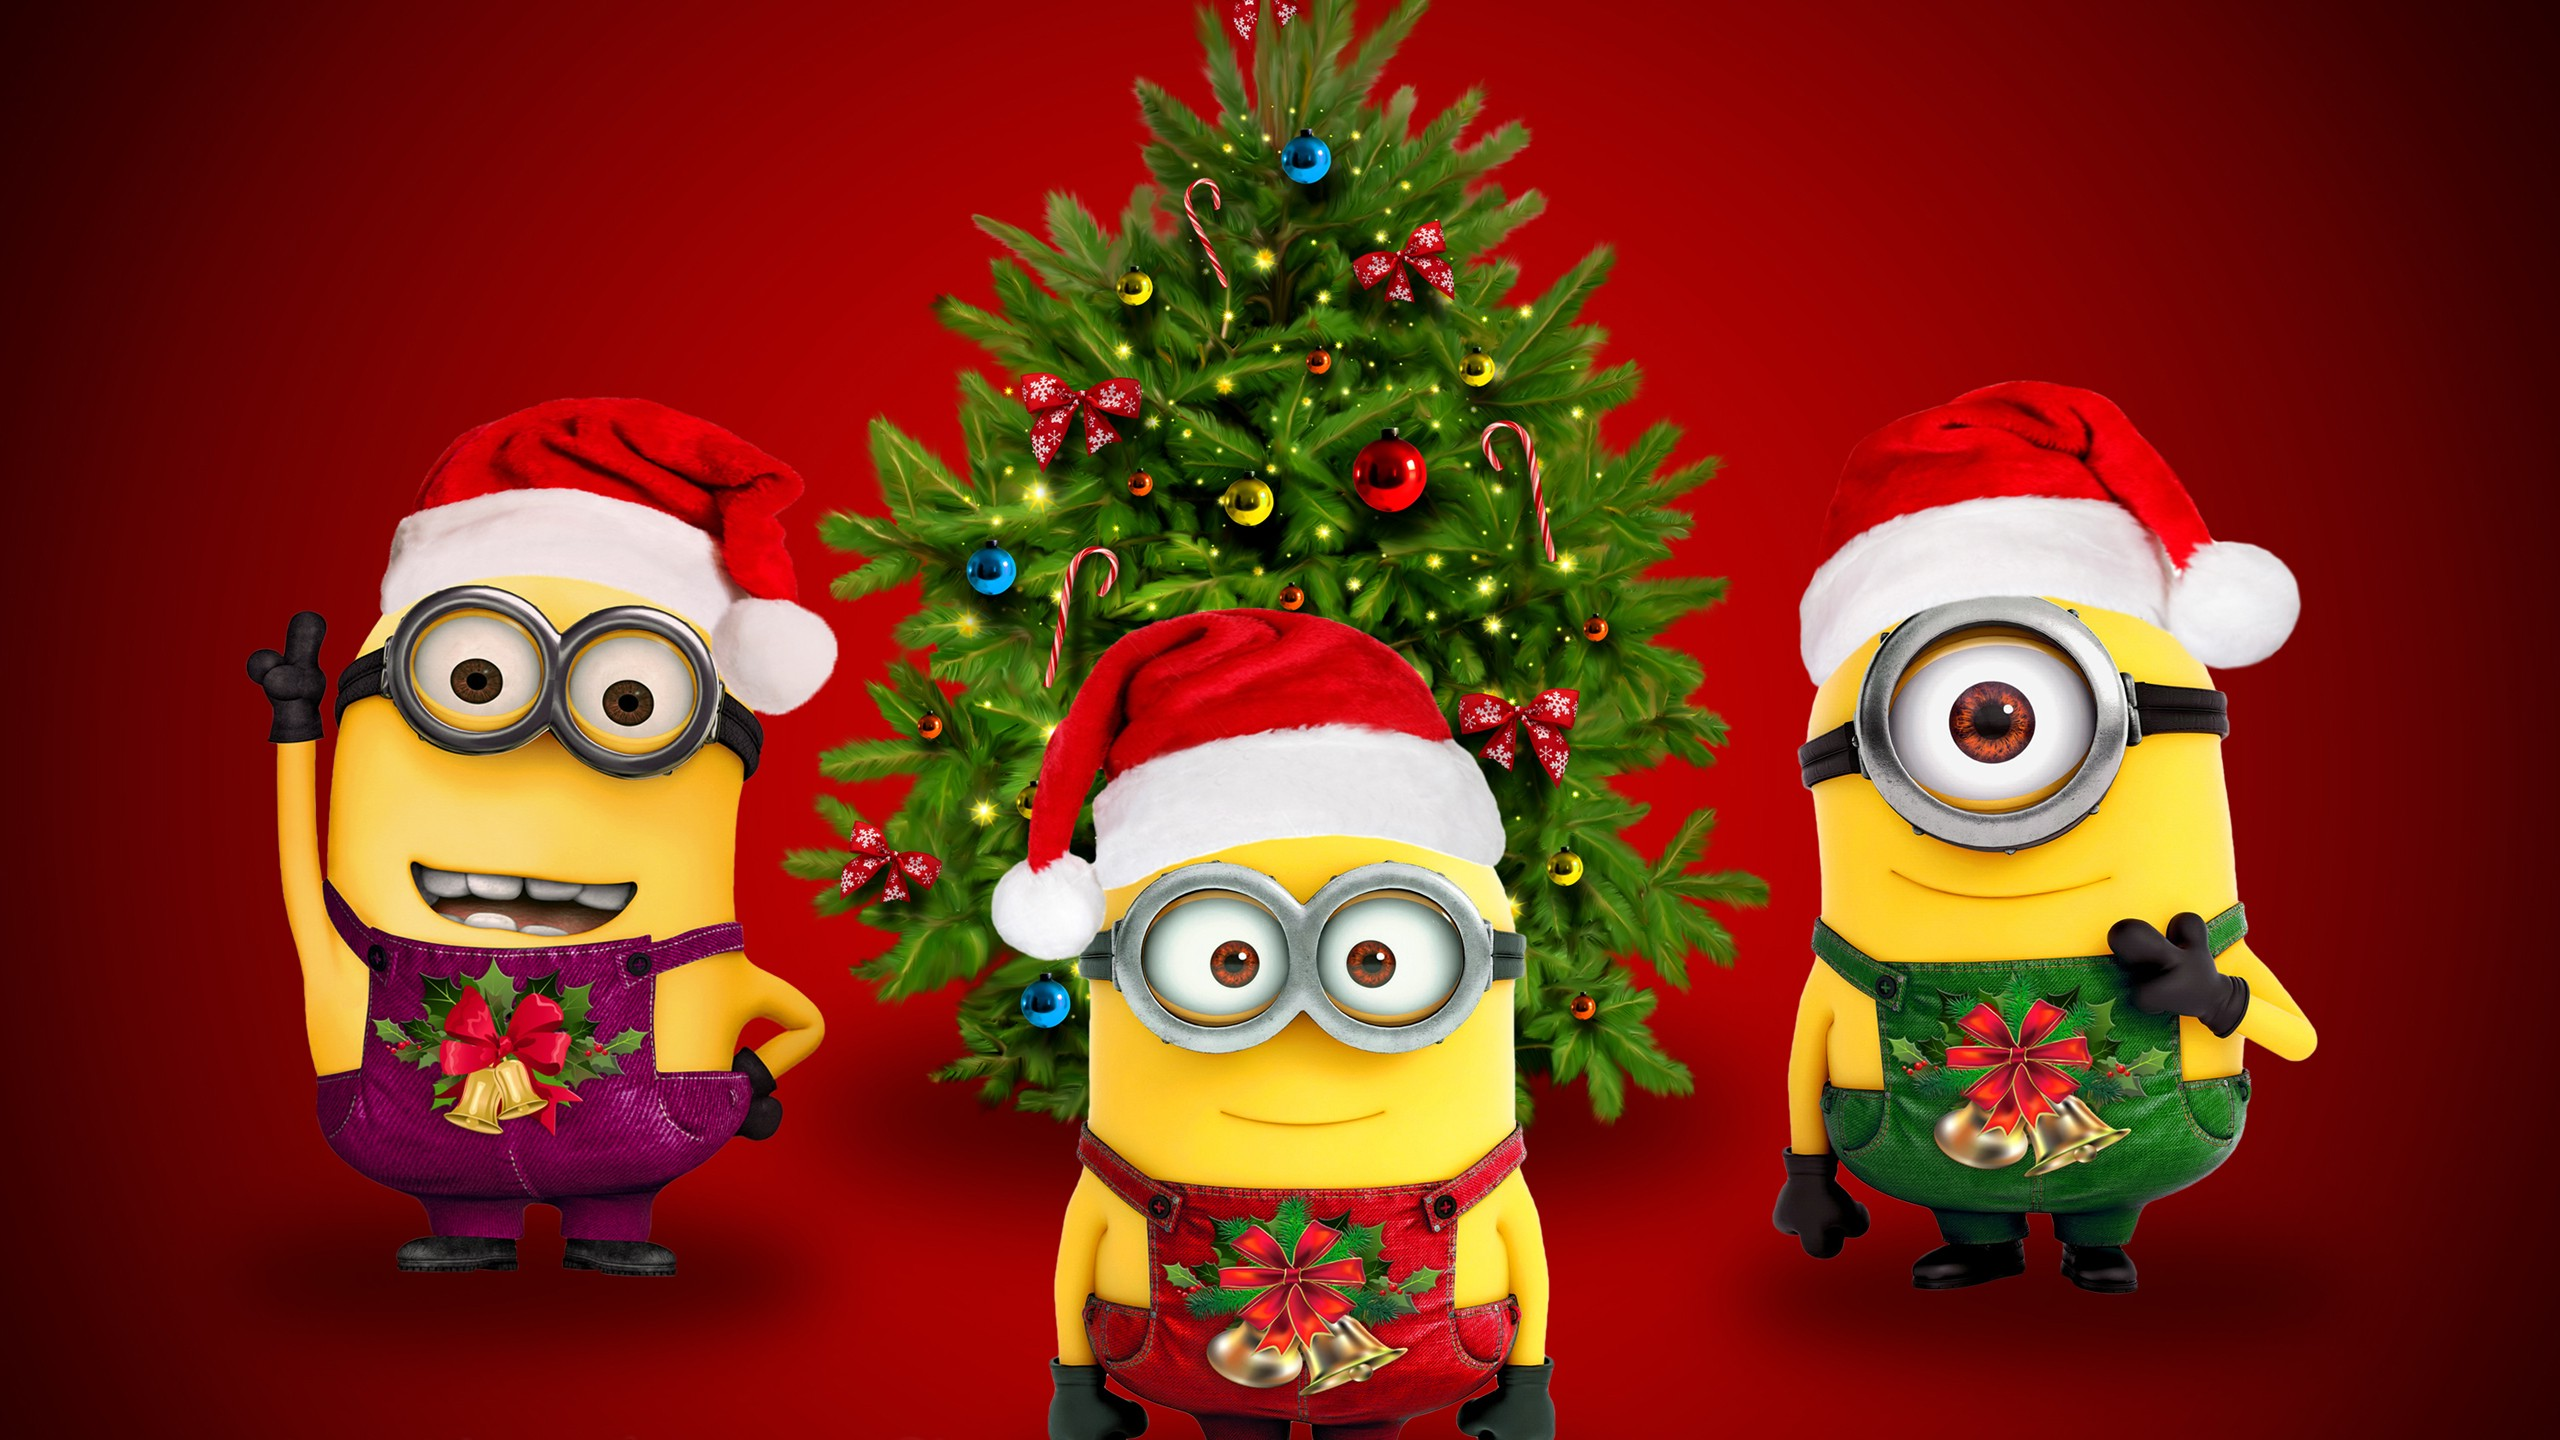 Moving Animation Wallpaper For Desktop Christmas Wallpapers Hd Desktop And Mobile Backgrounds